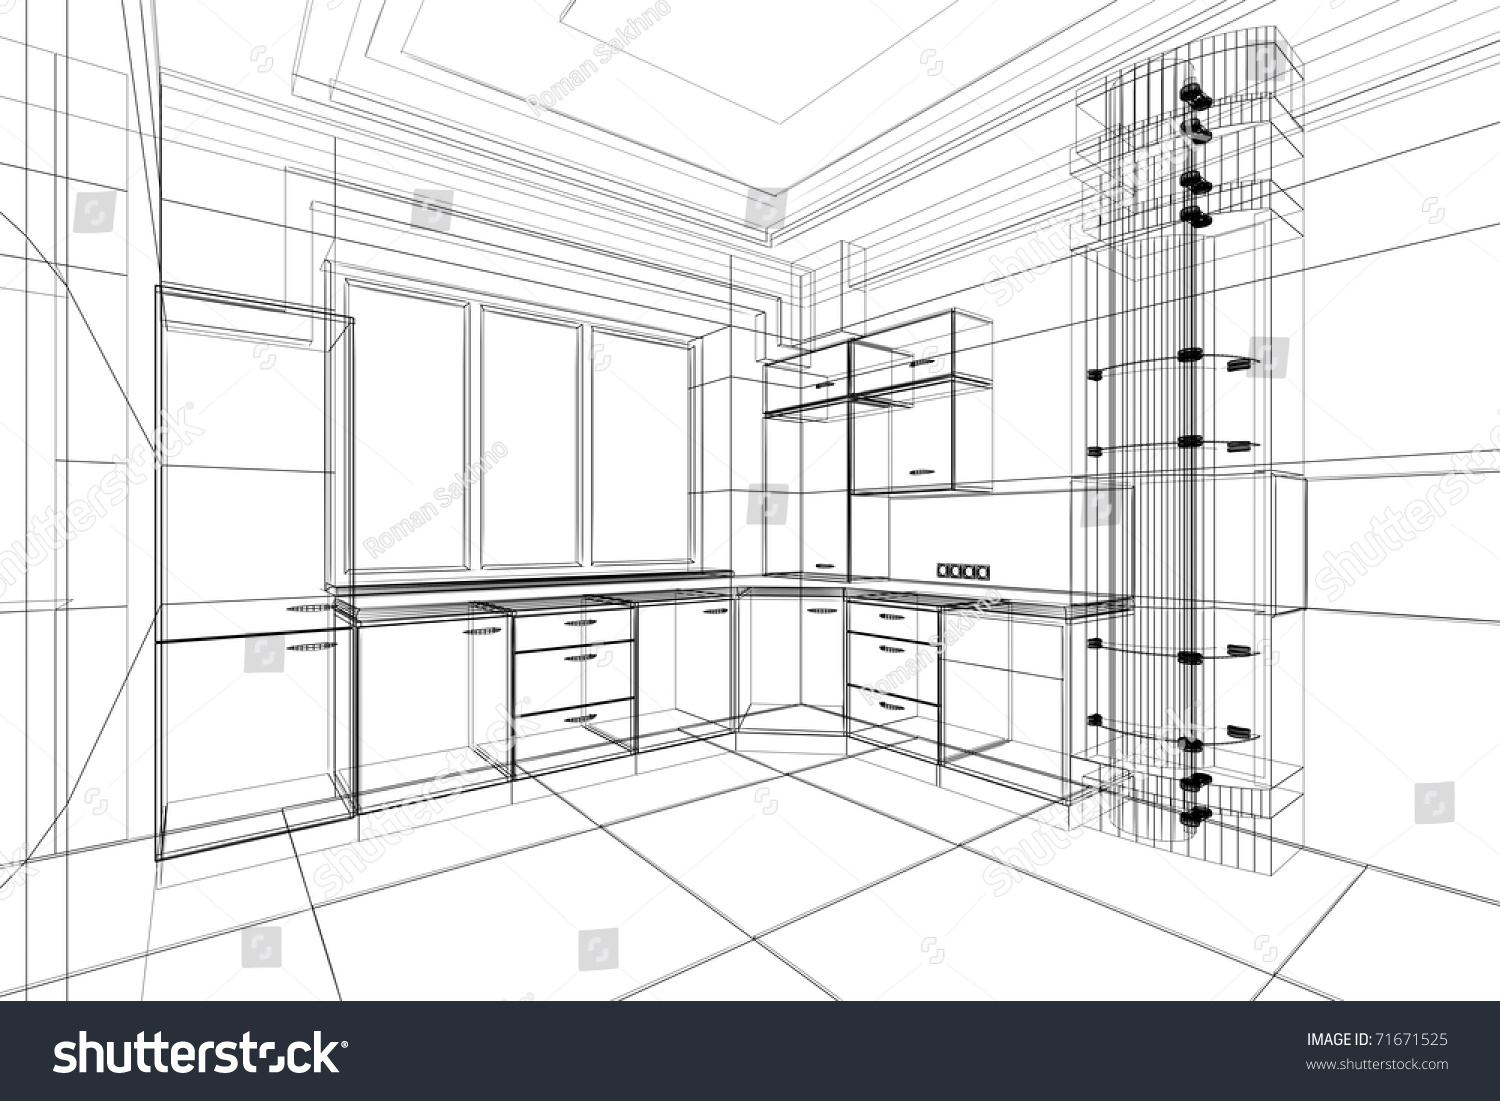 Abstract Sketch Design Interior Kitchen Stock Illustration 71671525 Shutterstock